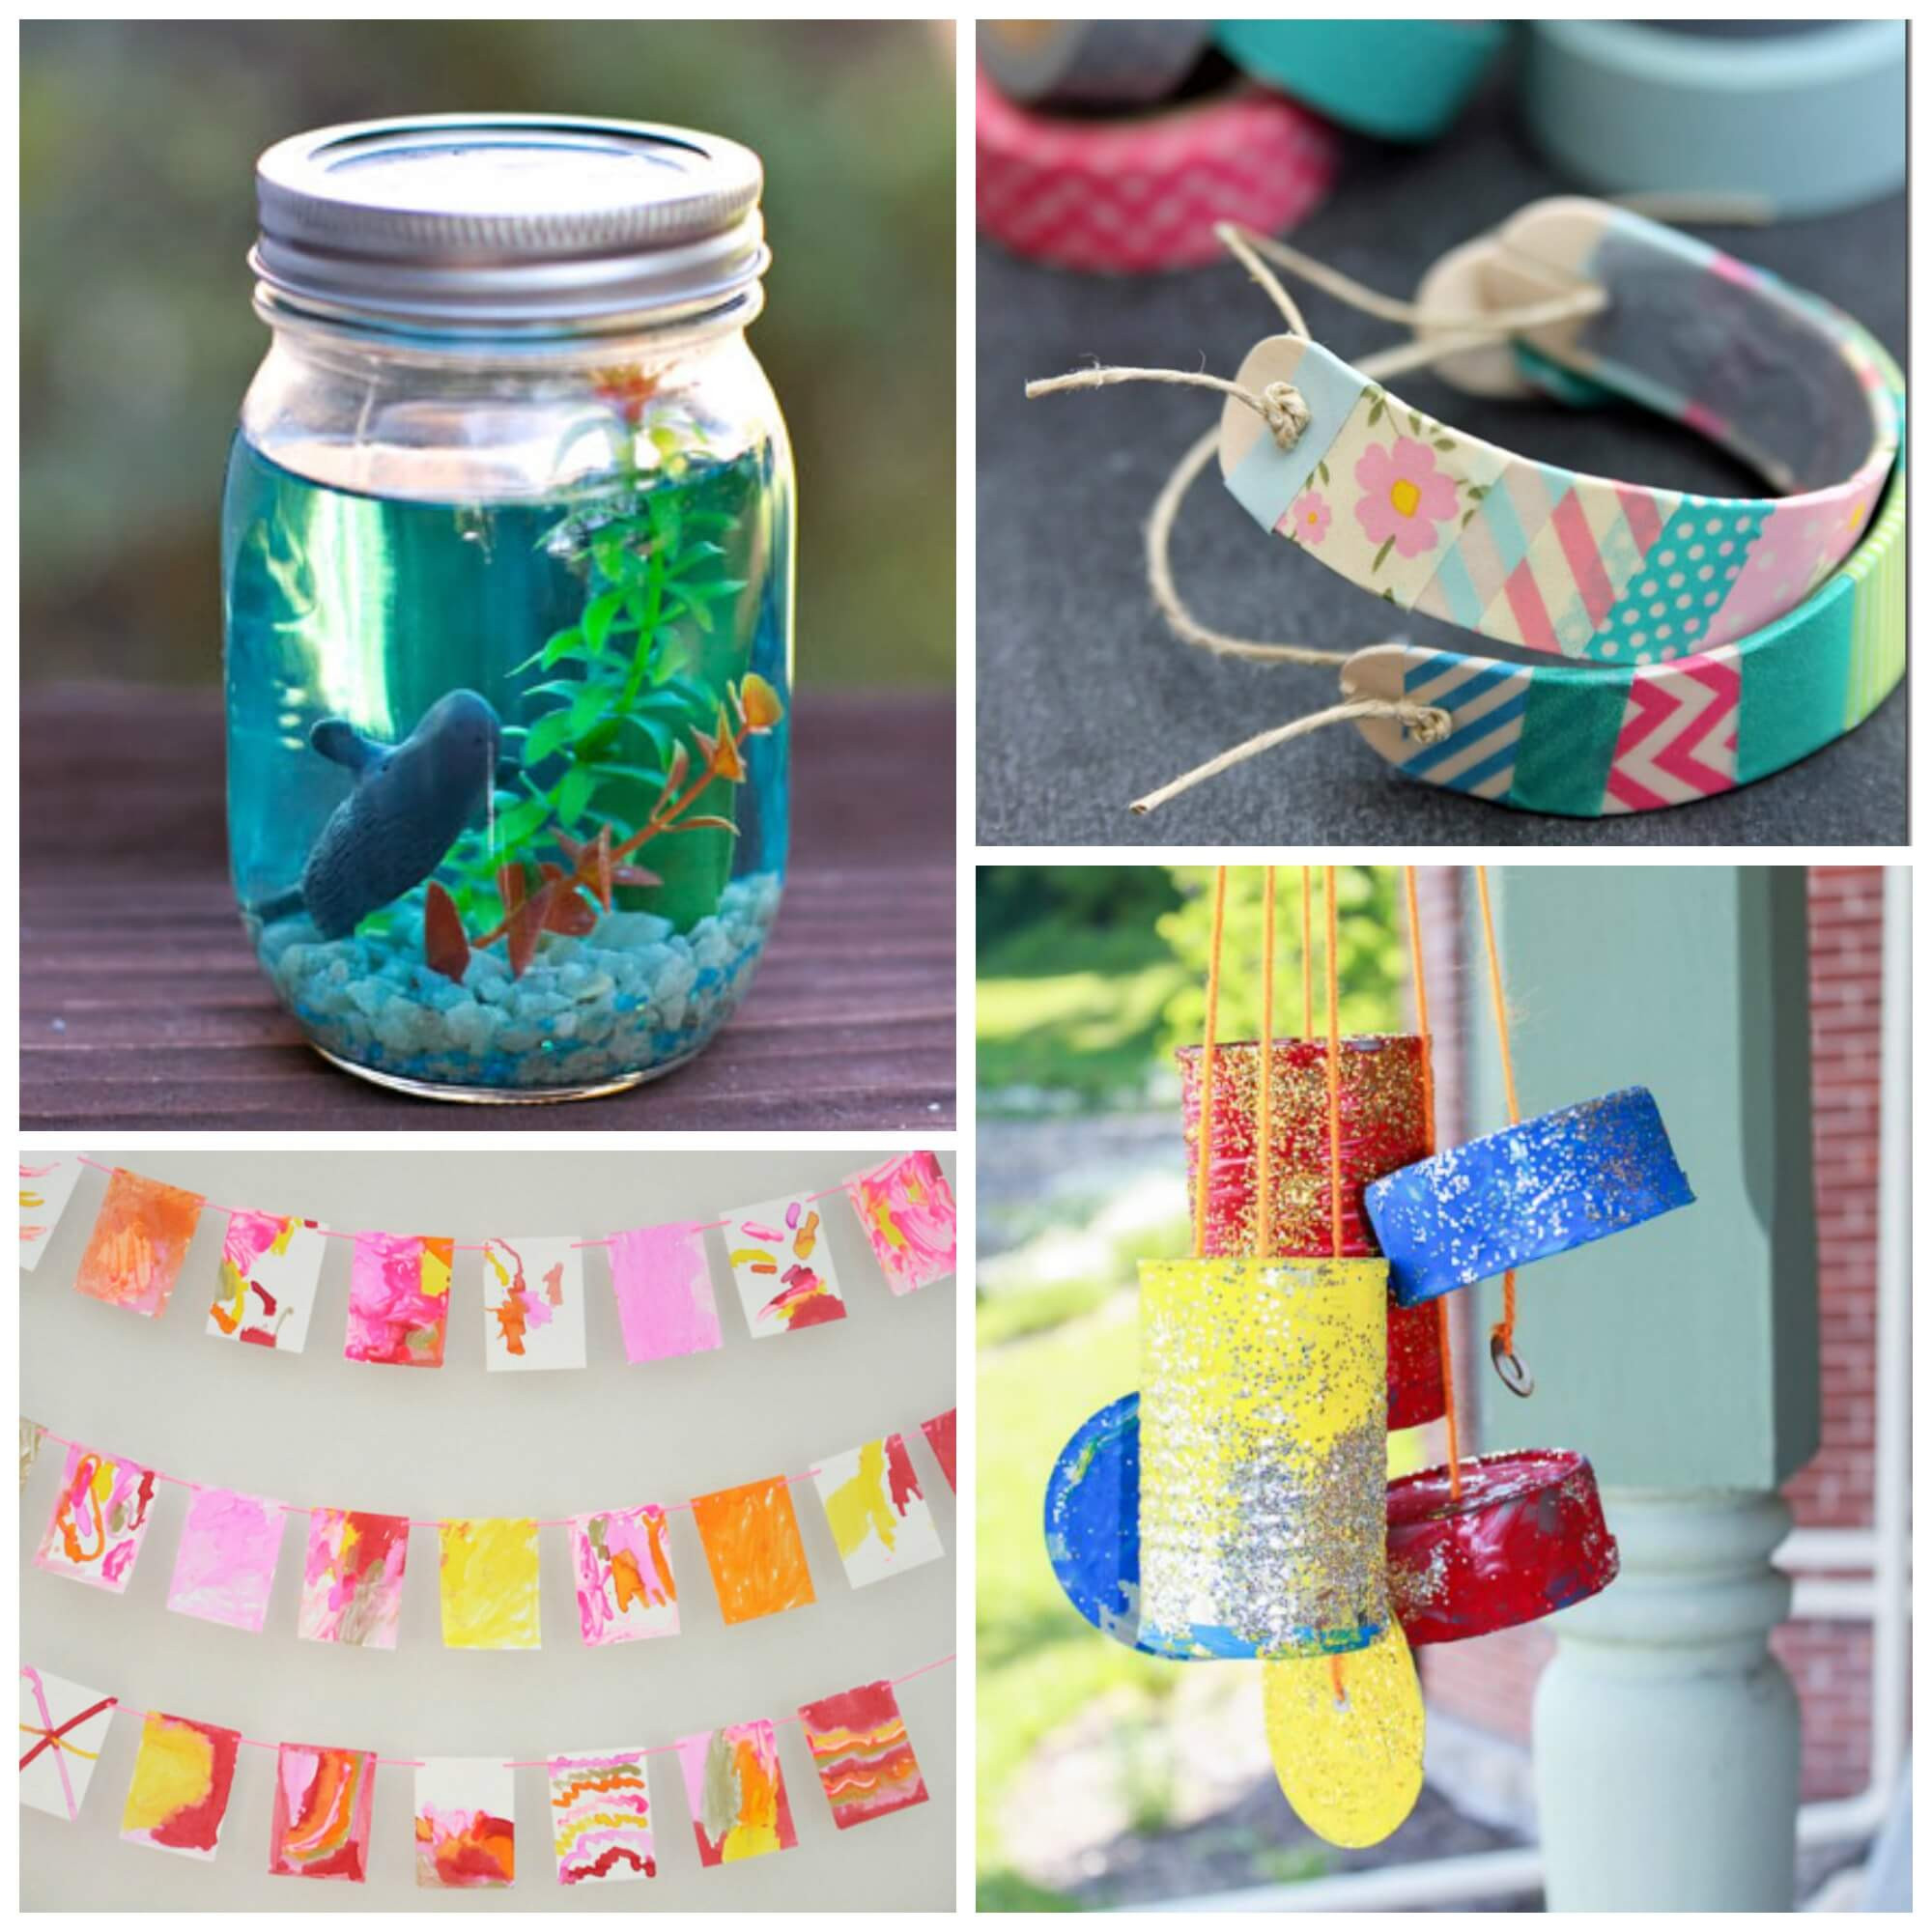 Best ideas about Arts And Crafts Projects For Kids . Save or Pin 15 Arts and Crafts for Kids Playdough To Plato Now.